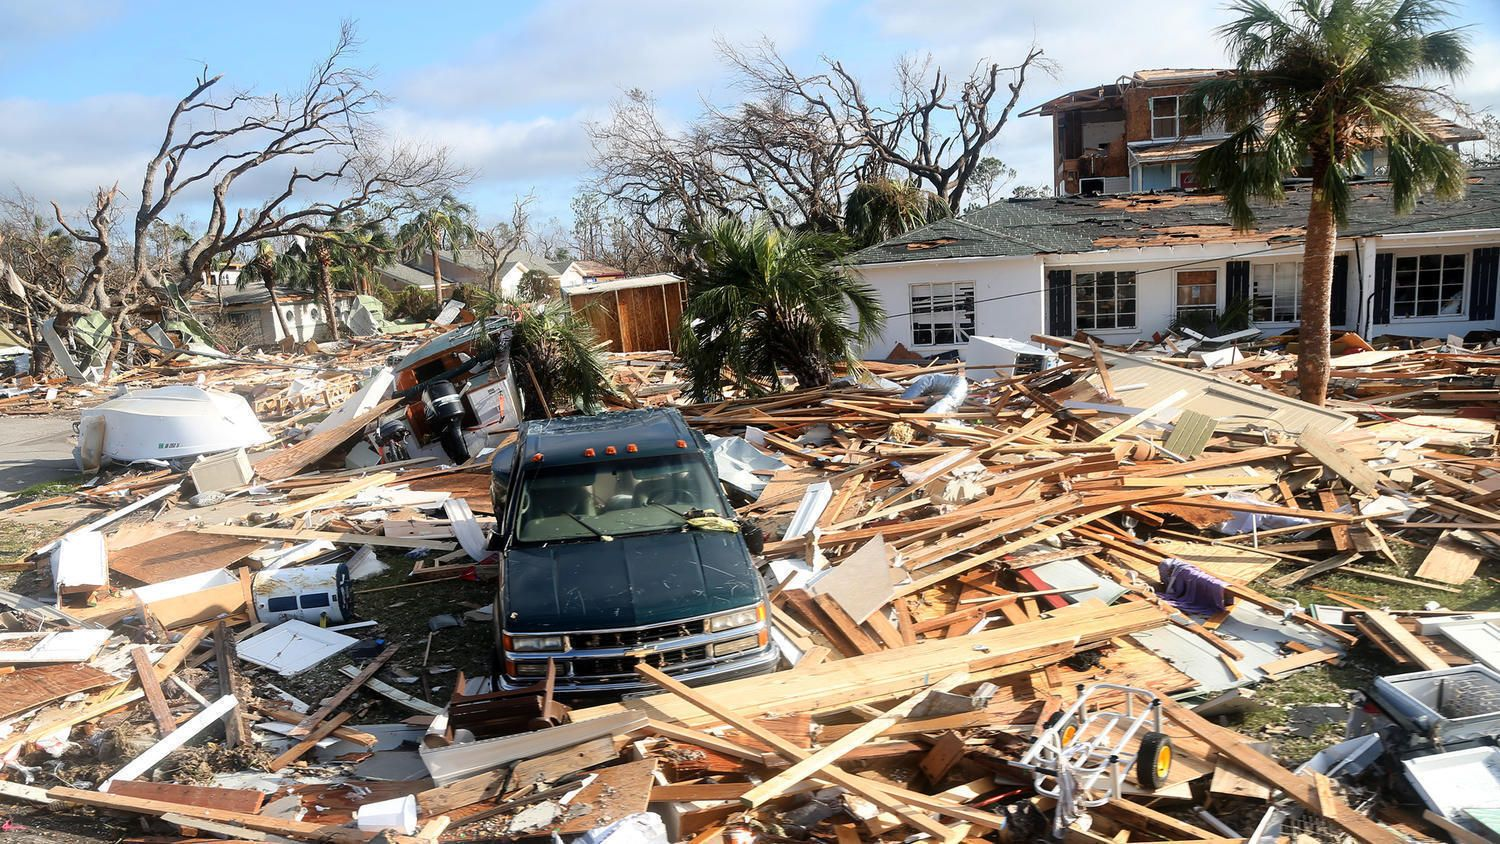 Florida Authorities Say 11 Now Dead From Hurricane Michael News Miami Community Mexico Beach Florida Gulf Coast Florida